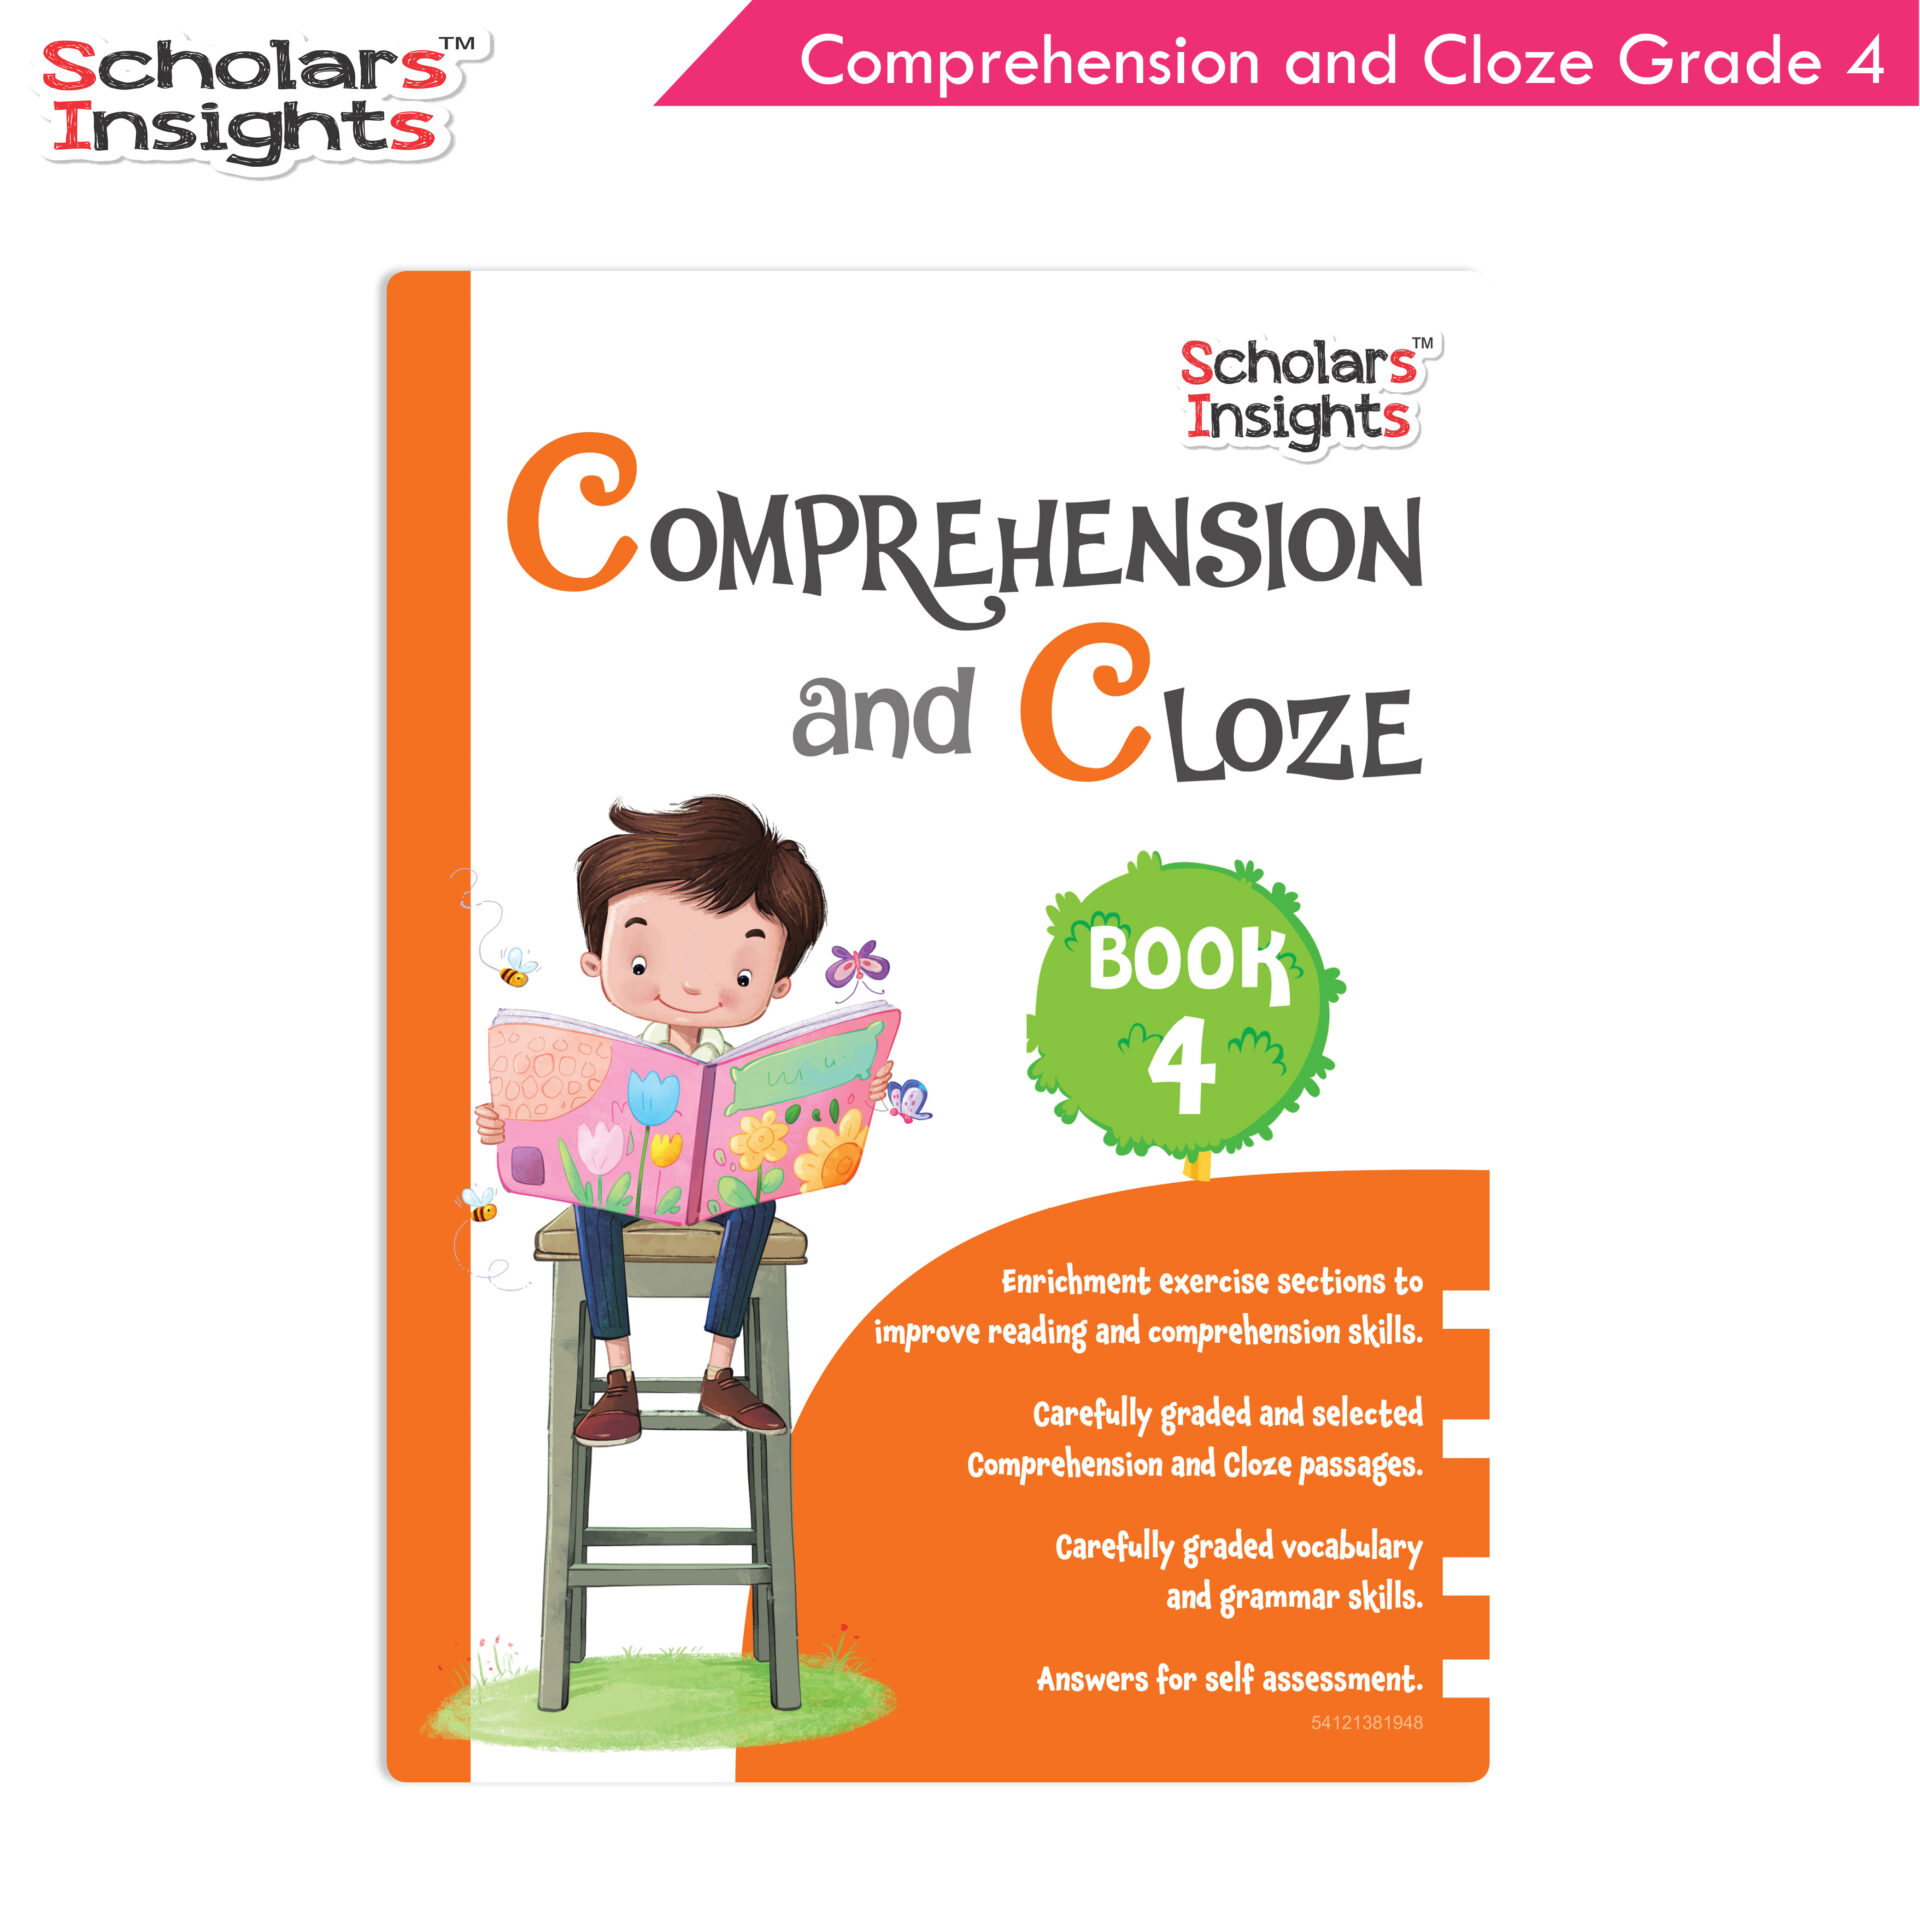 Scholars Insights Comprehension and Cloze Grade 4 1 1